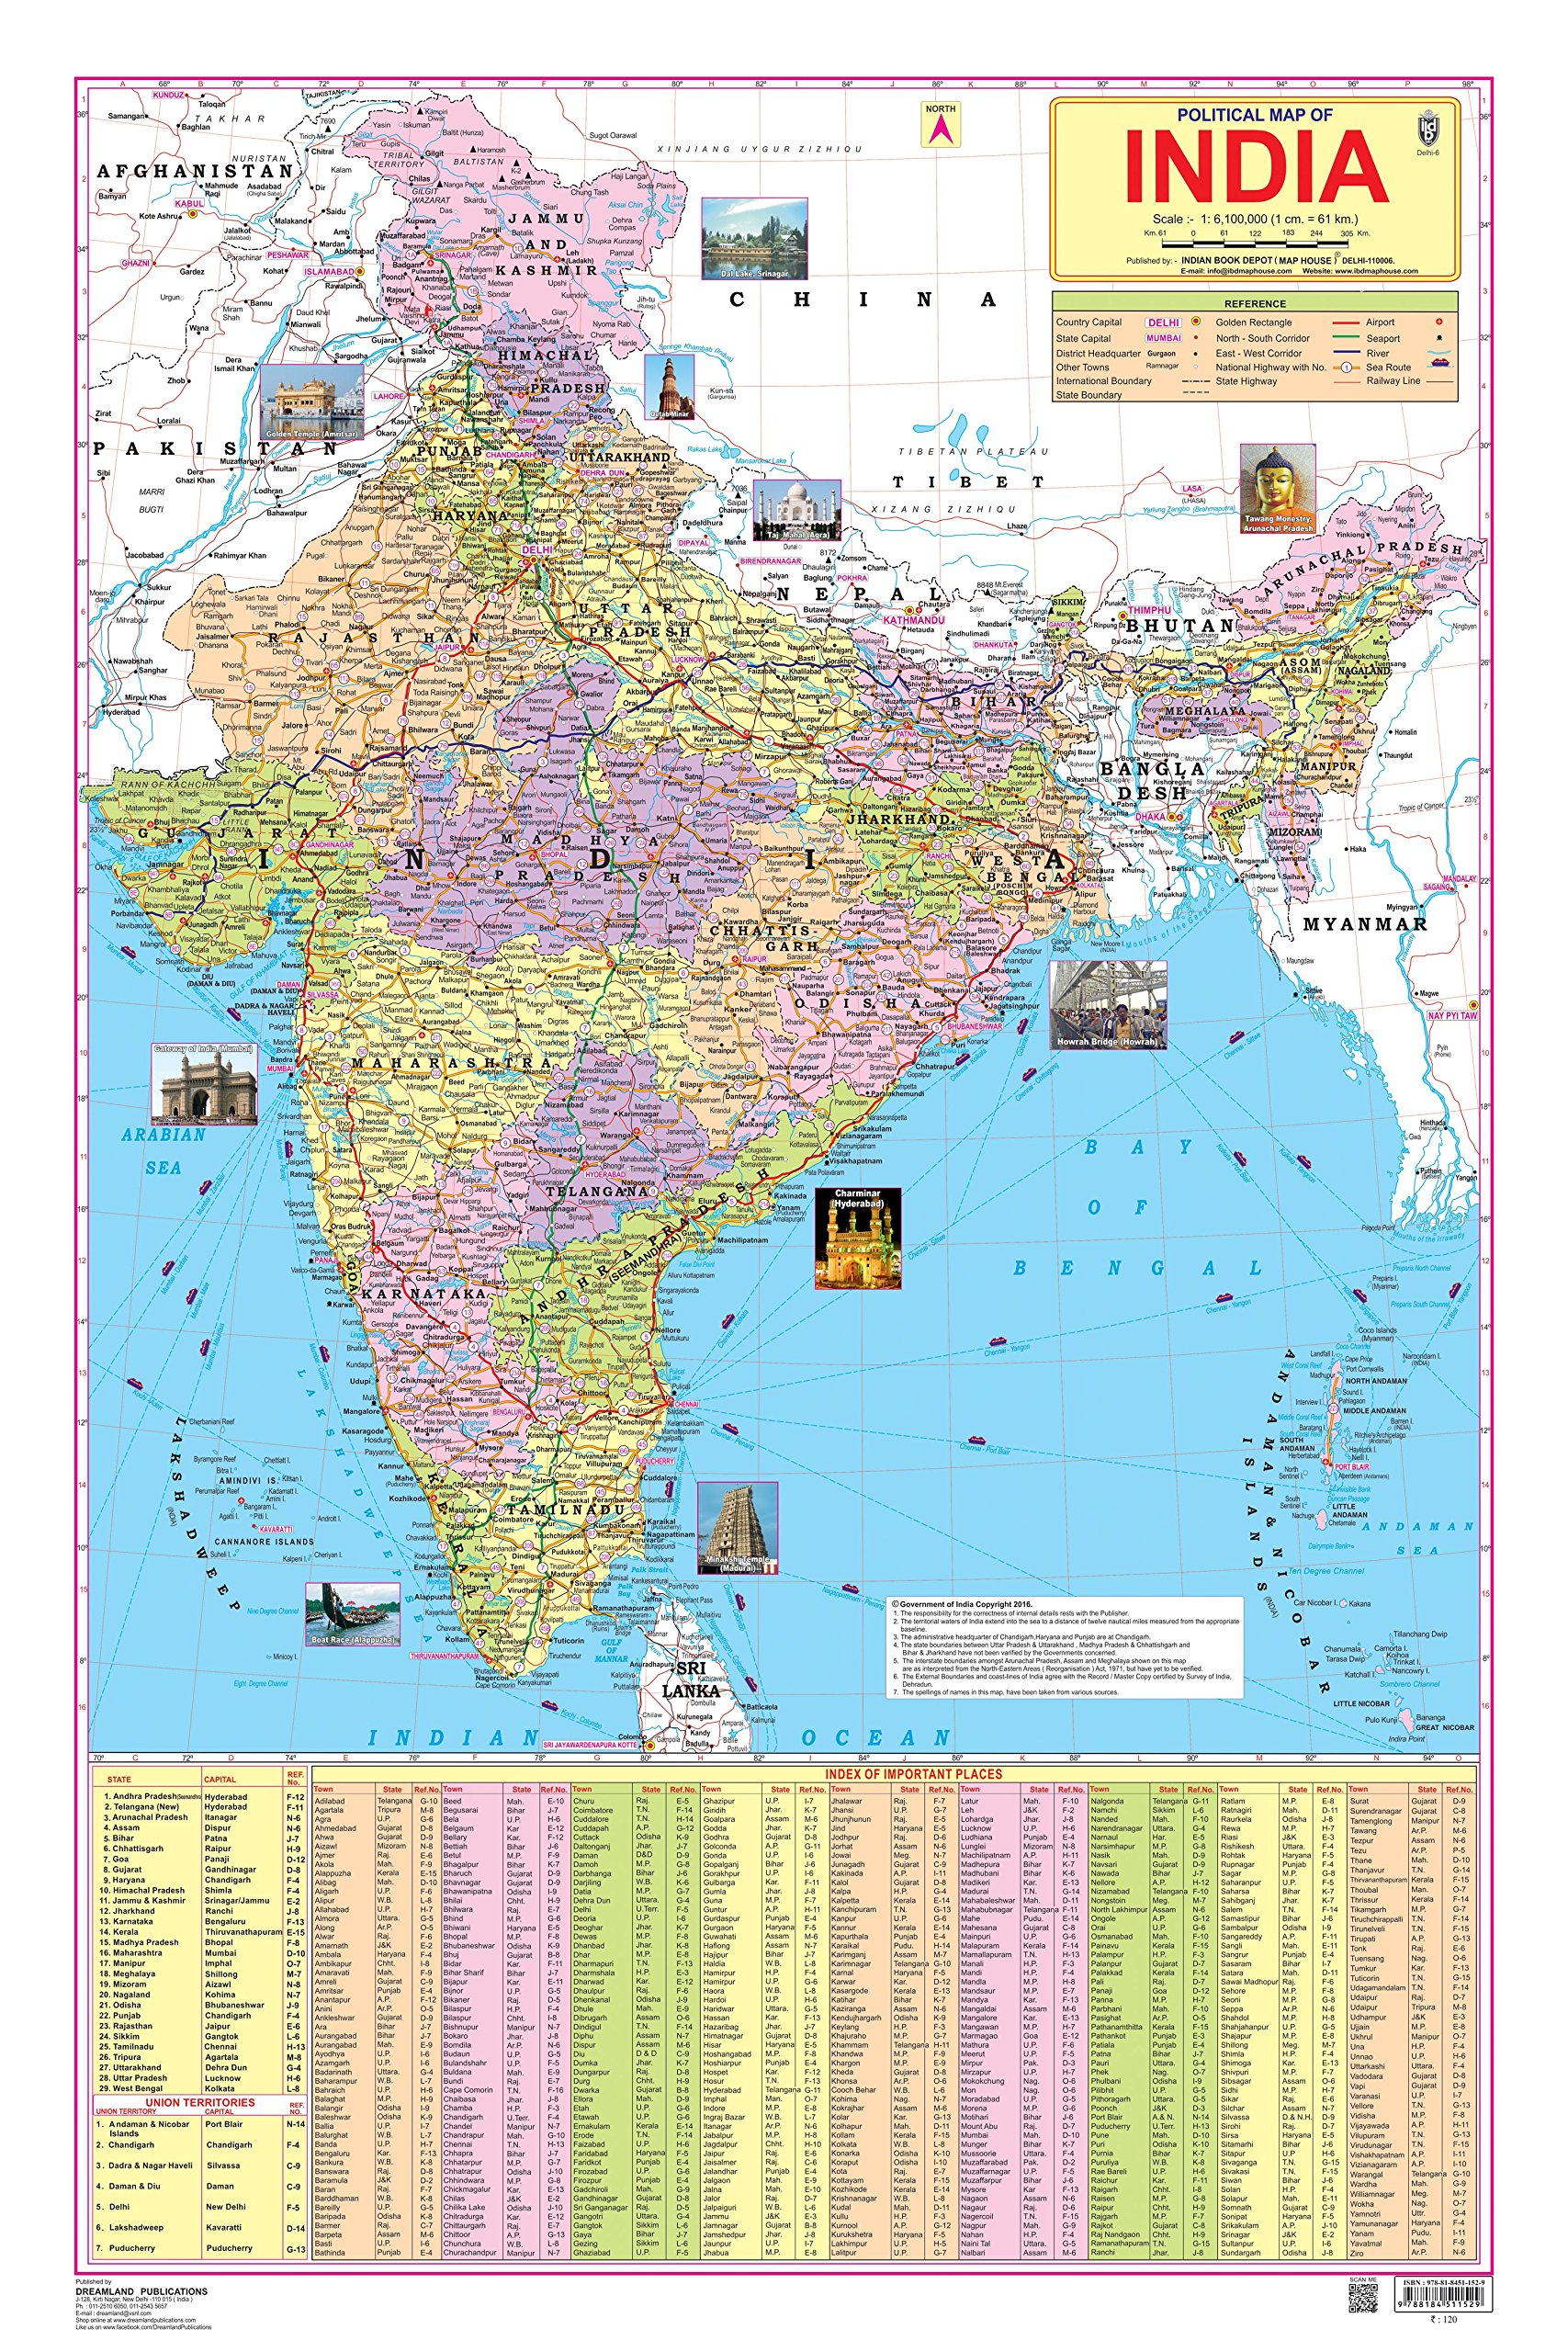 buy india map book online at low prices in india  india map reviews ratings  amazonin. buy india map book online at low prices in india  india map